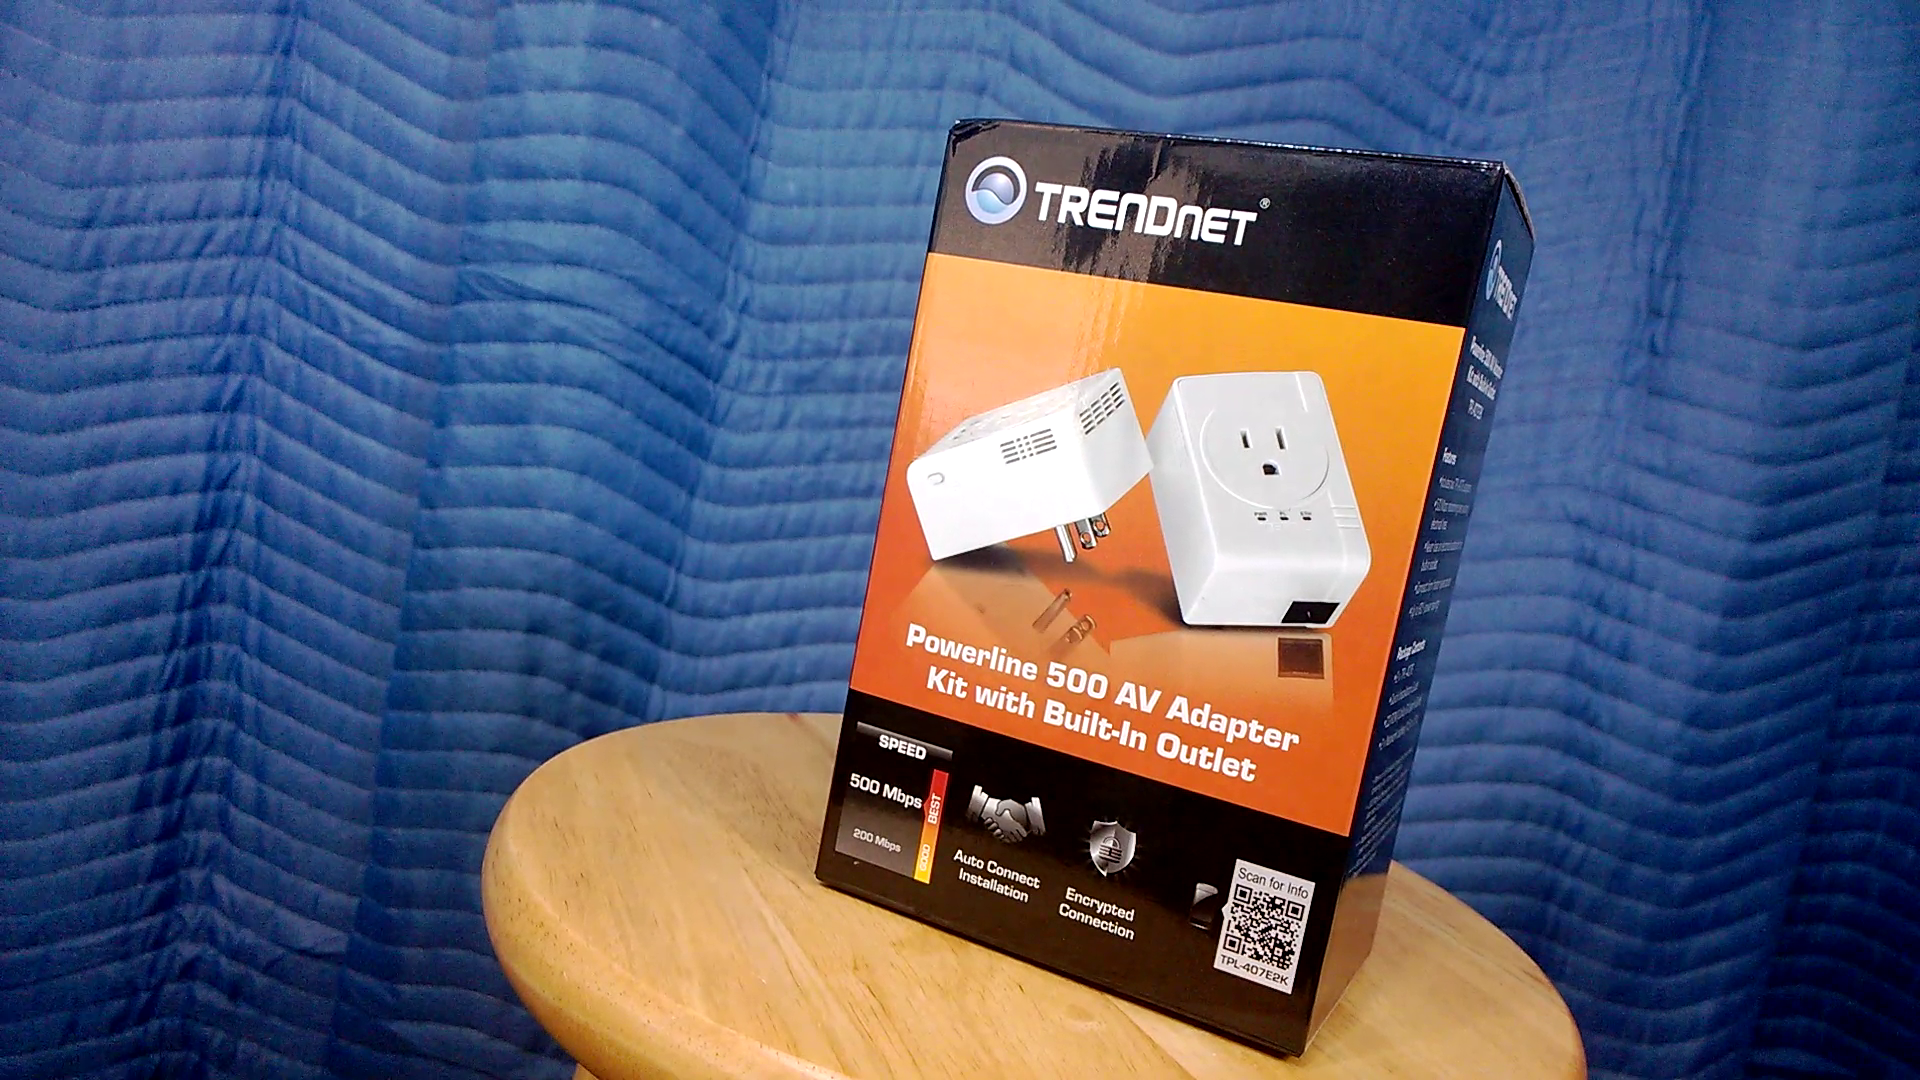 Review Trendnet Powerline 500 Av Adapter Kit Internet Over Your Home Wiring Homes Electrical